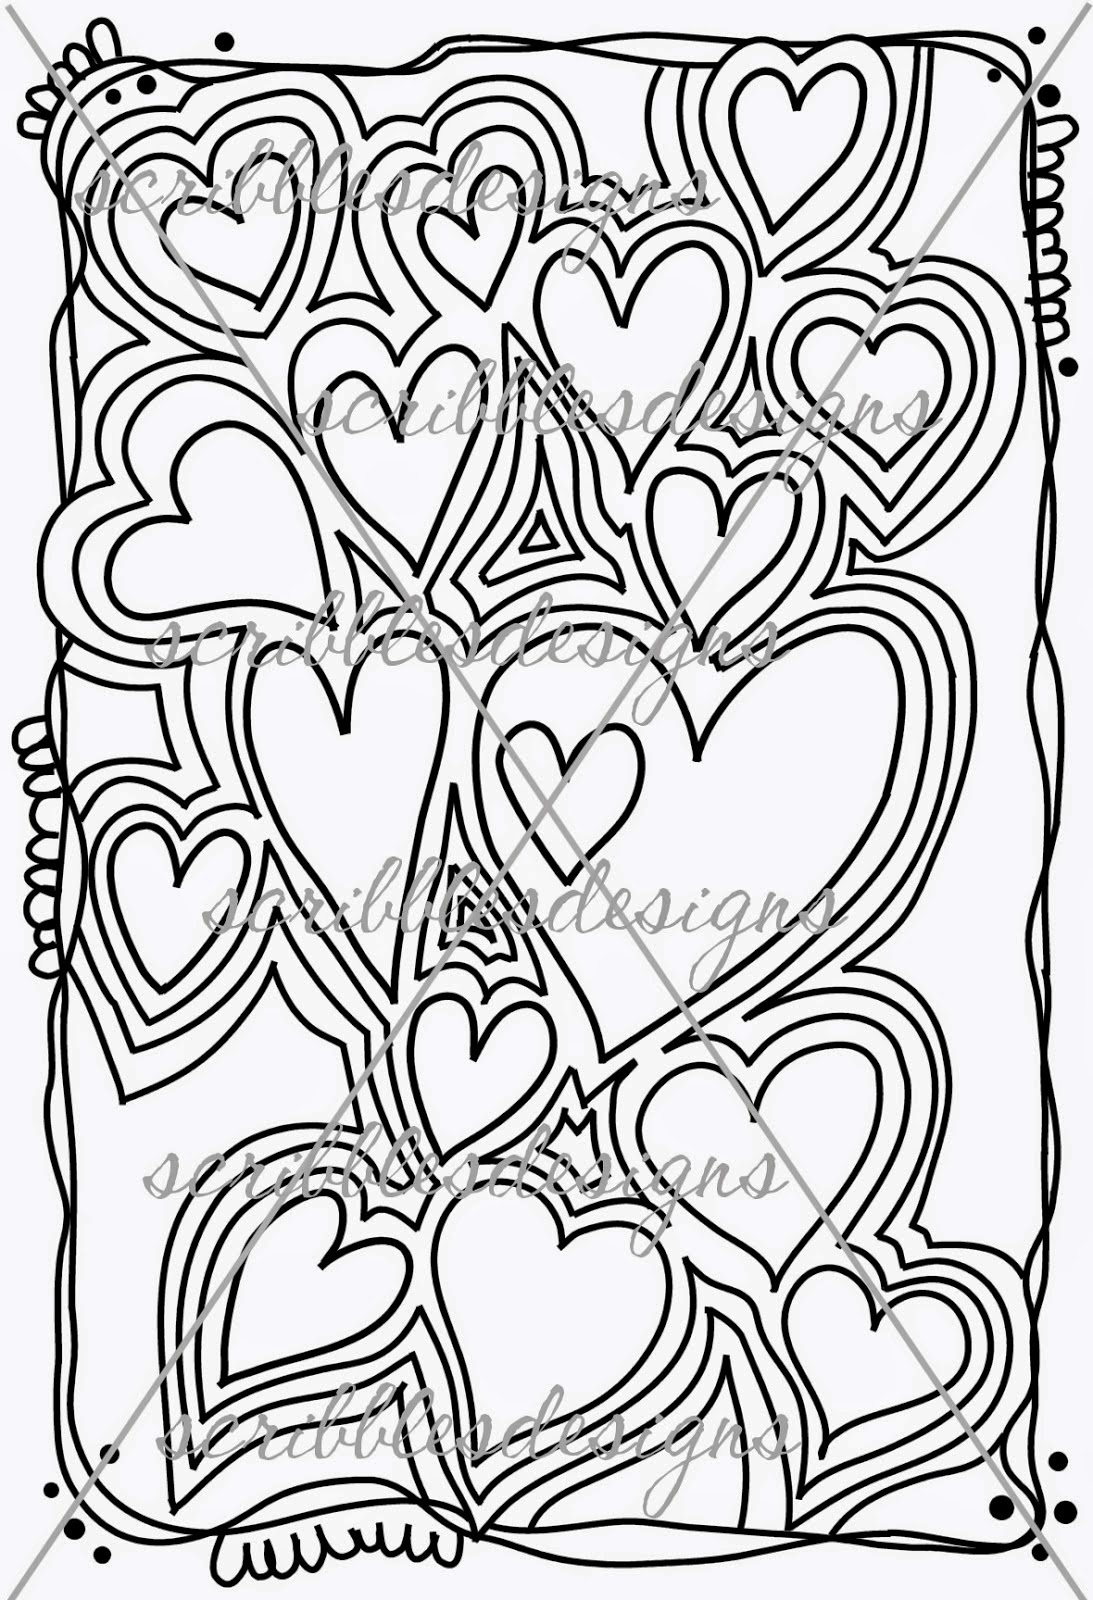 http://buyscribblesdesigns.blogspot.ca/2013/08/a-20-heart-doodle-3-300.html